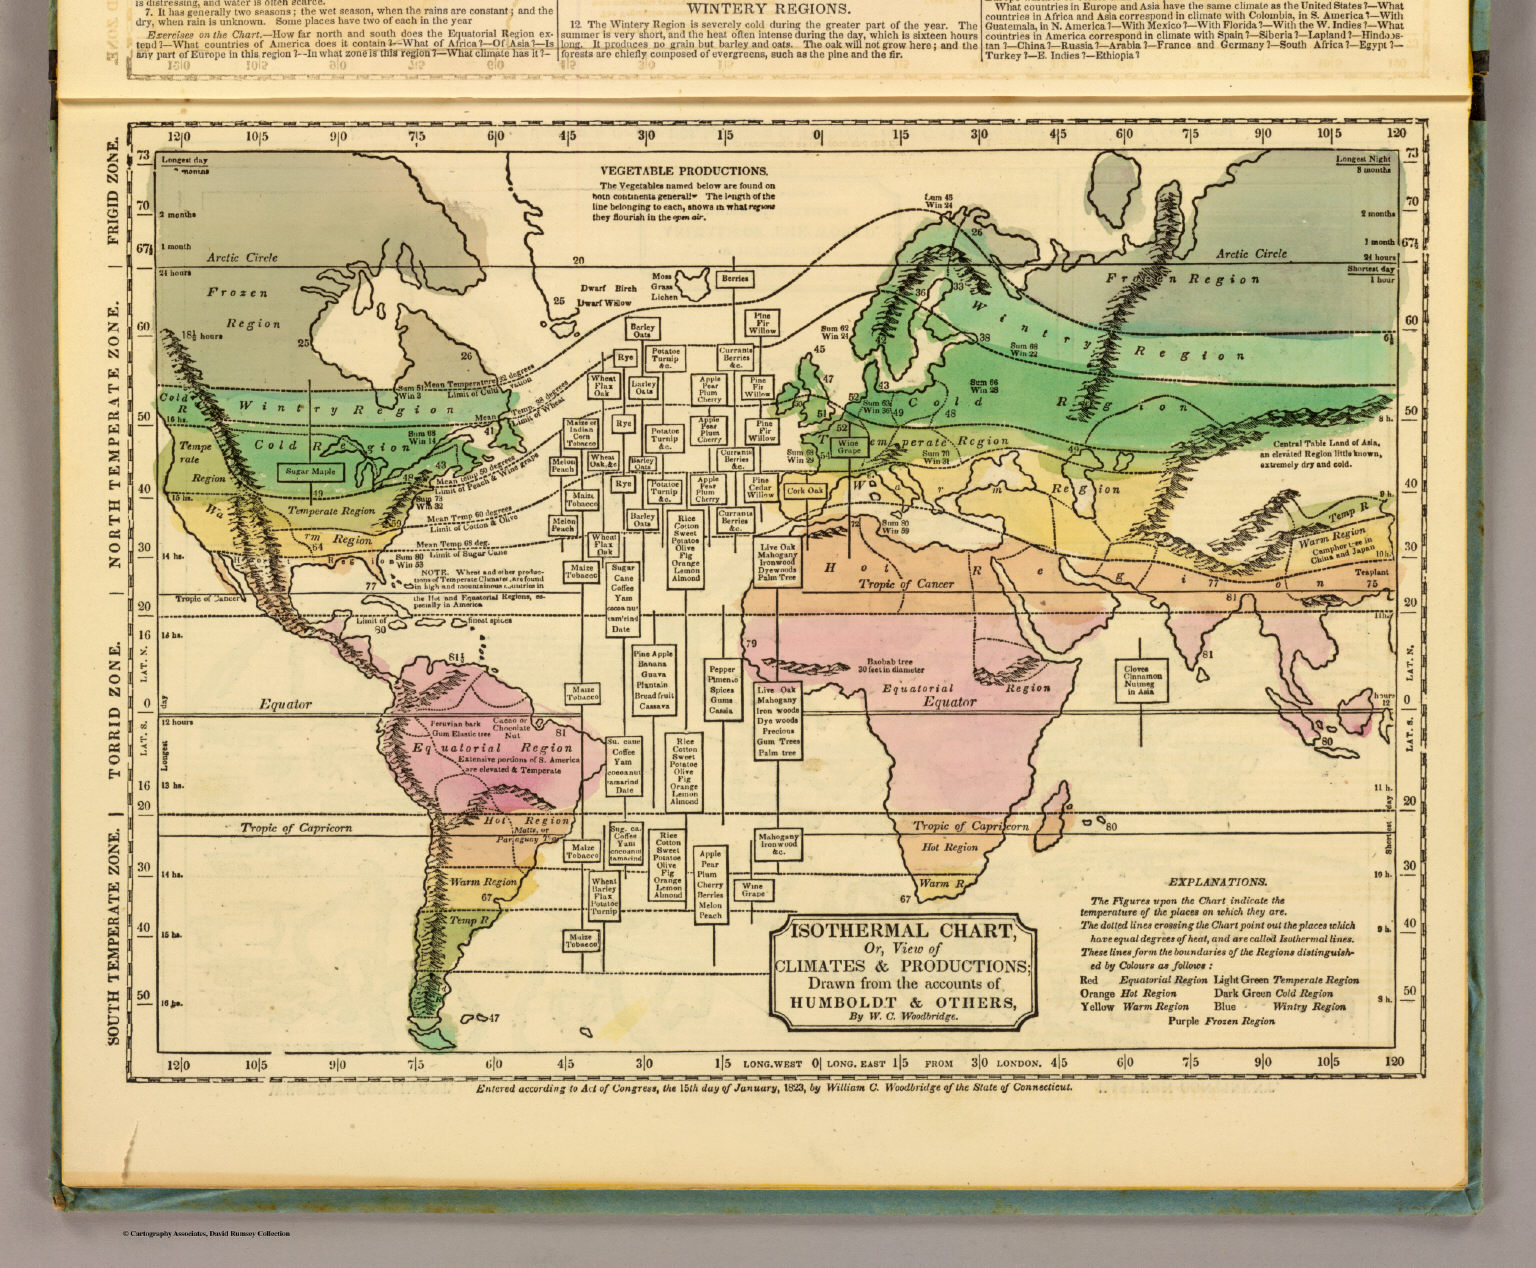 Isothermal chart productions david rumsey historical map collection georeference this map buy print export gumiabroncs Image collections